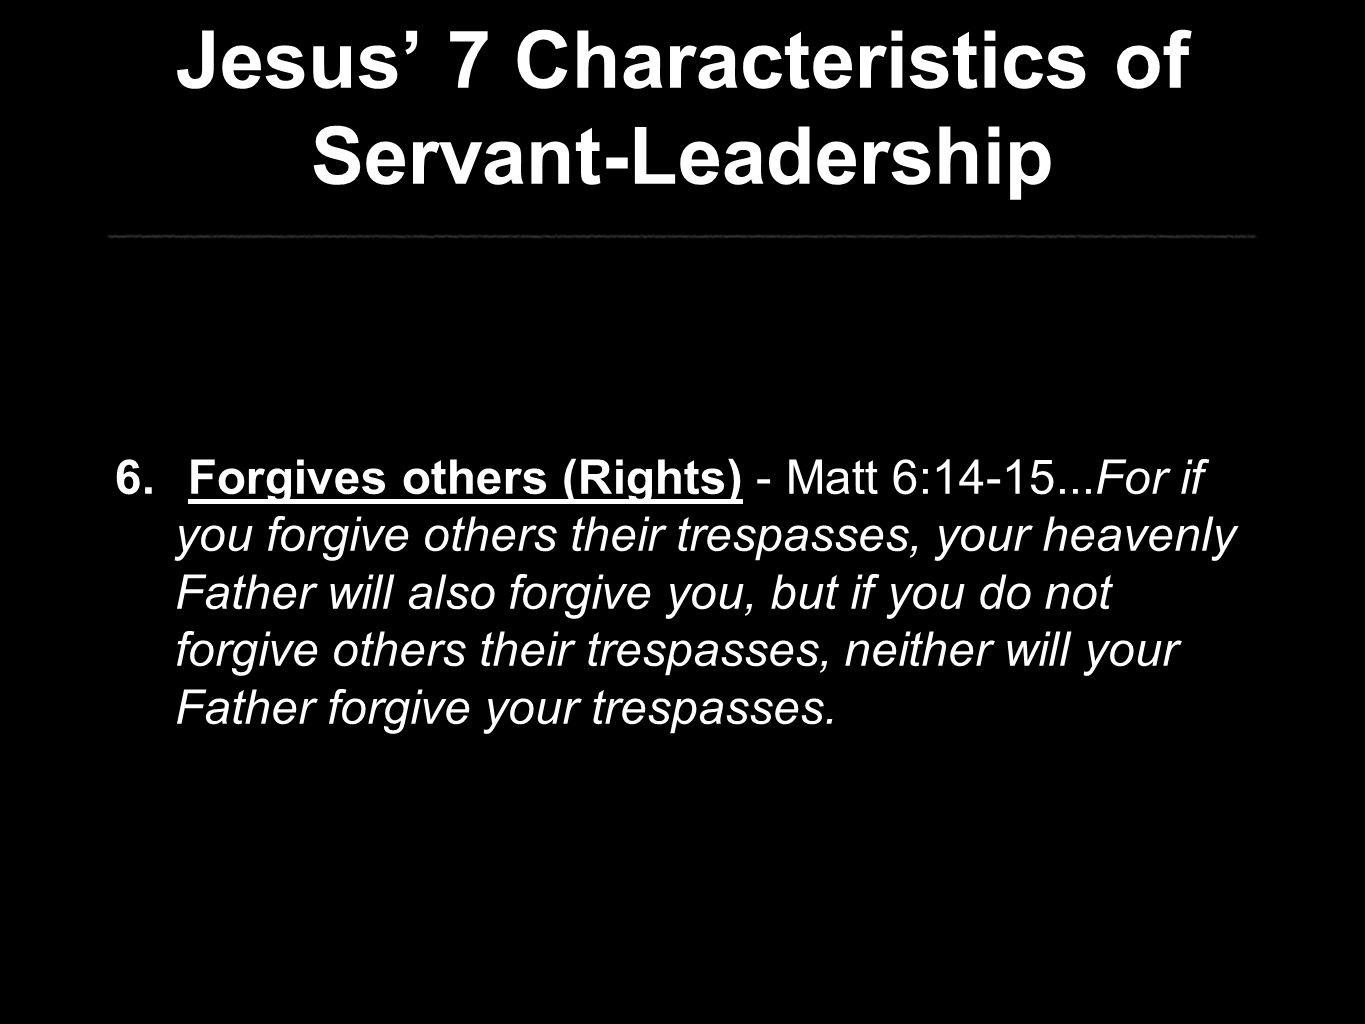 Jesus' 7 Characteristics of Servant-Leadership 6. Forgives others (Rights) - Matt 6:14-15...For if you forgive others their trespasses, your heavenly